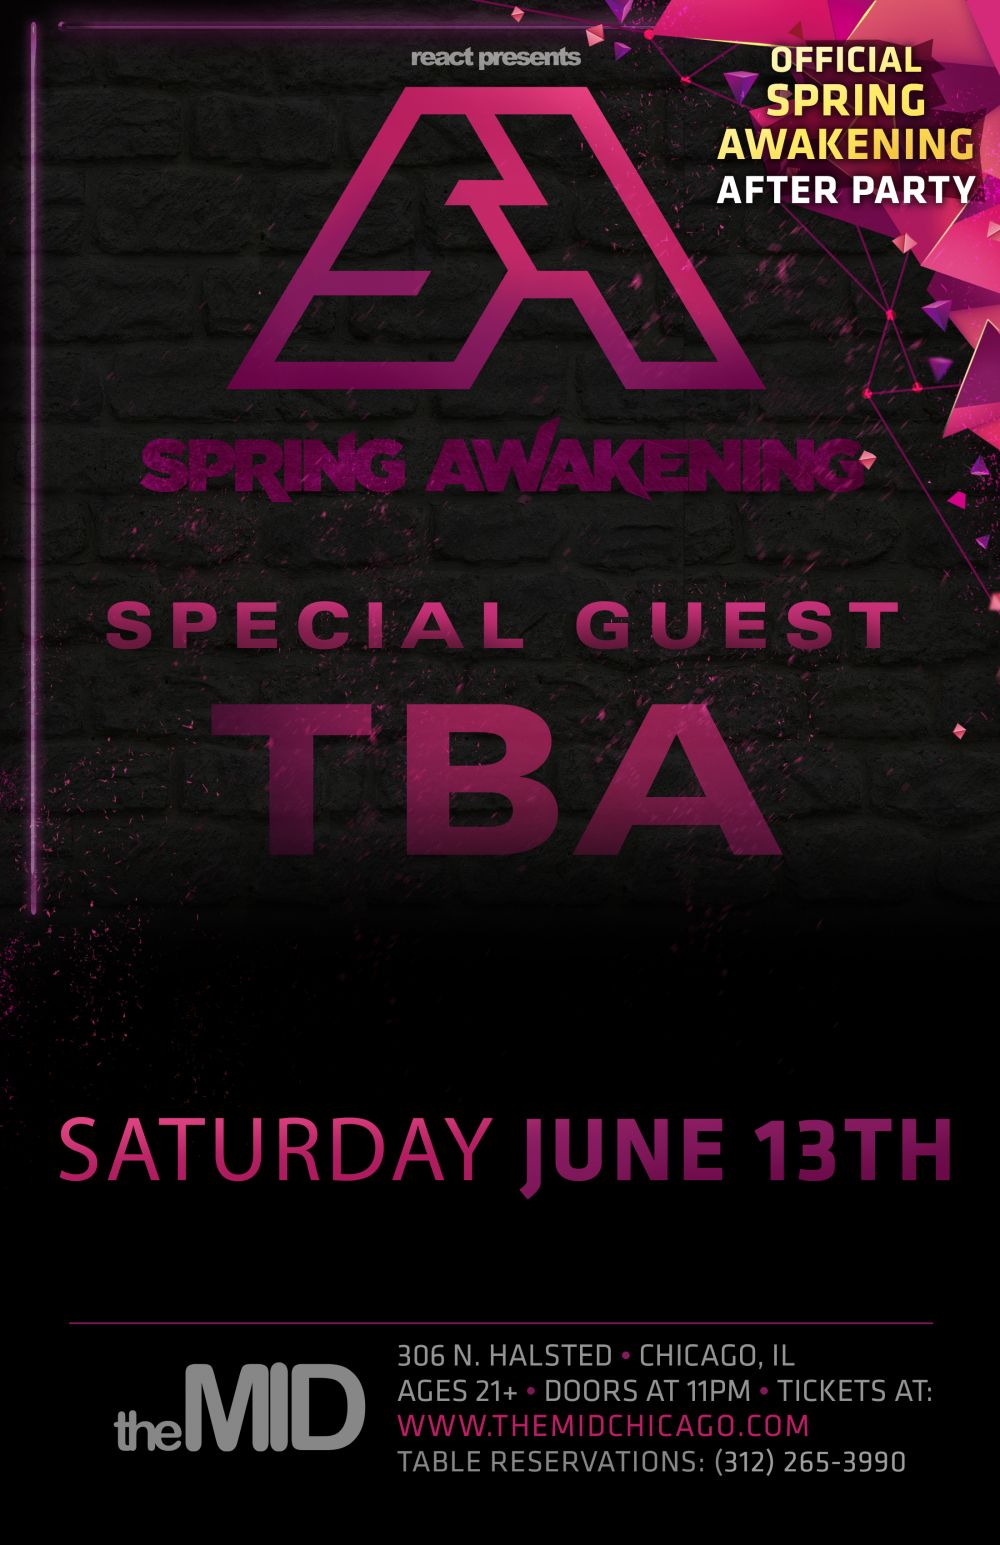 special guest saturday june 13 the mid